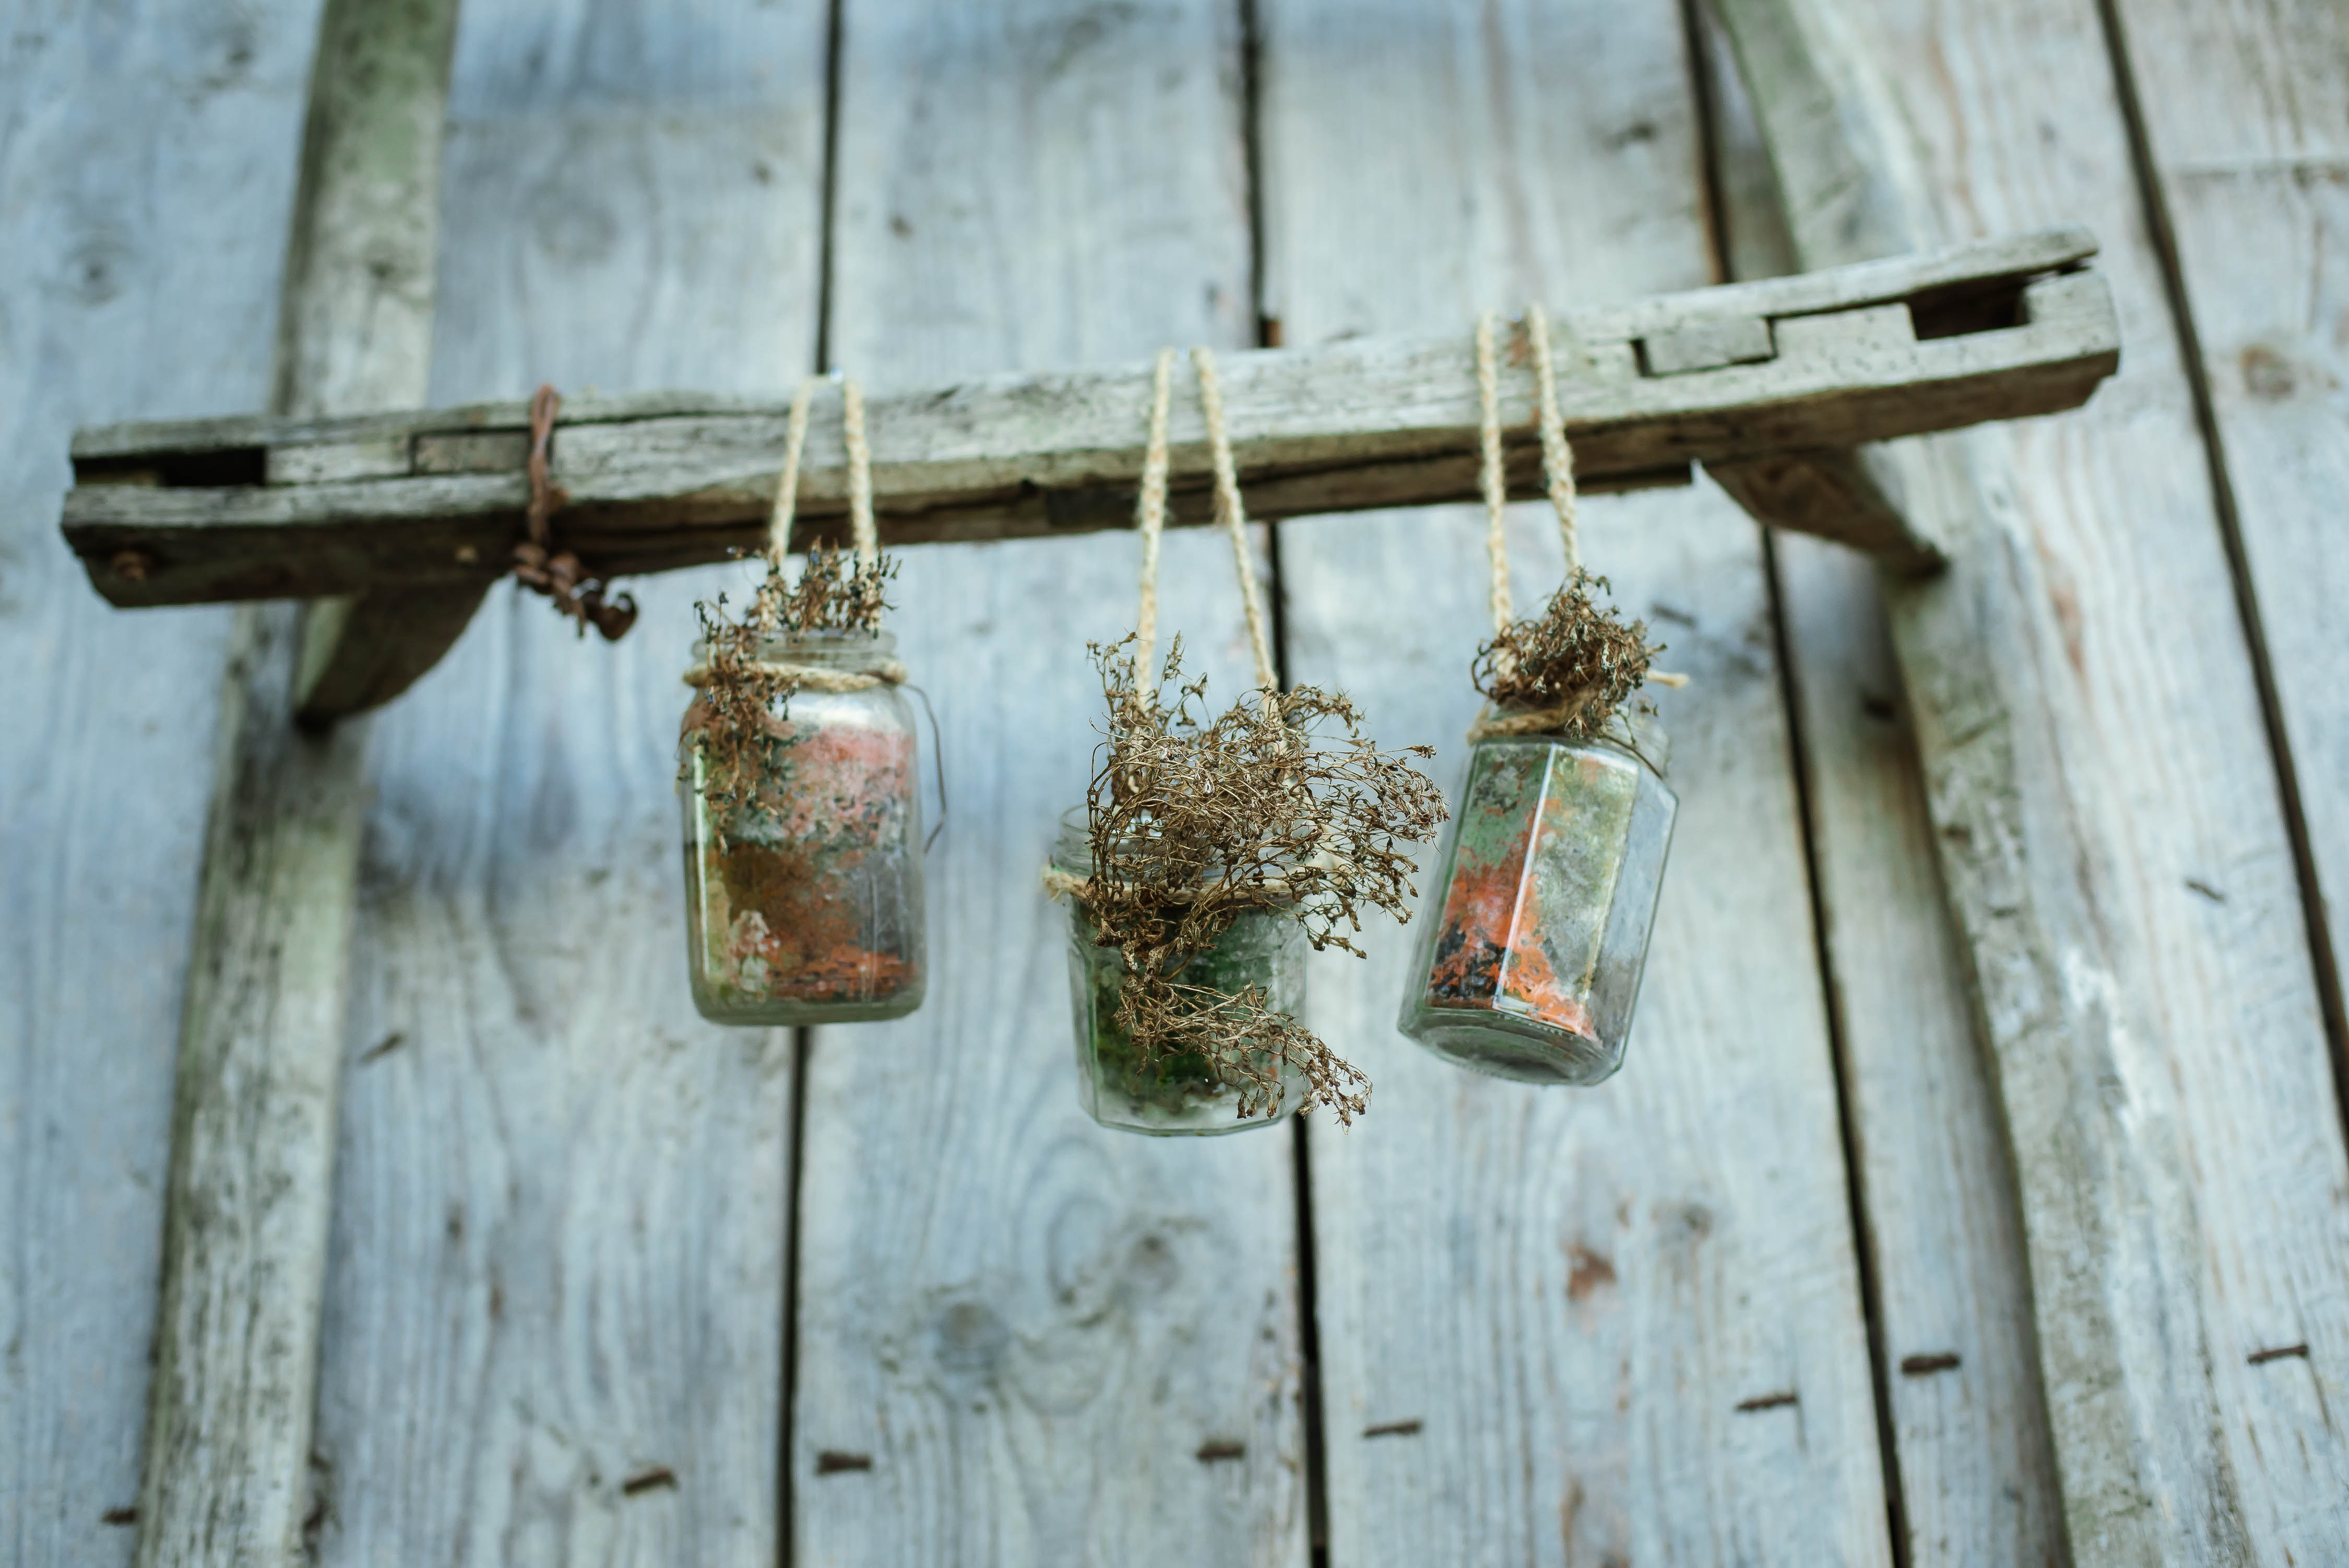 Small plants in glass jars suspended on a wooden wall